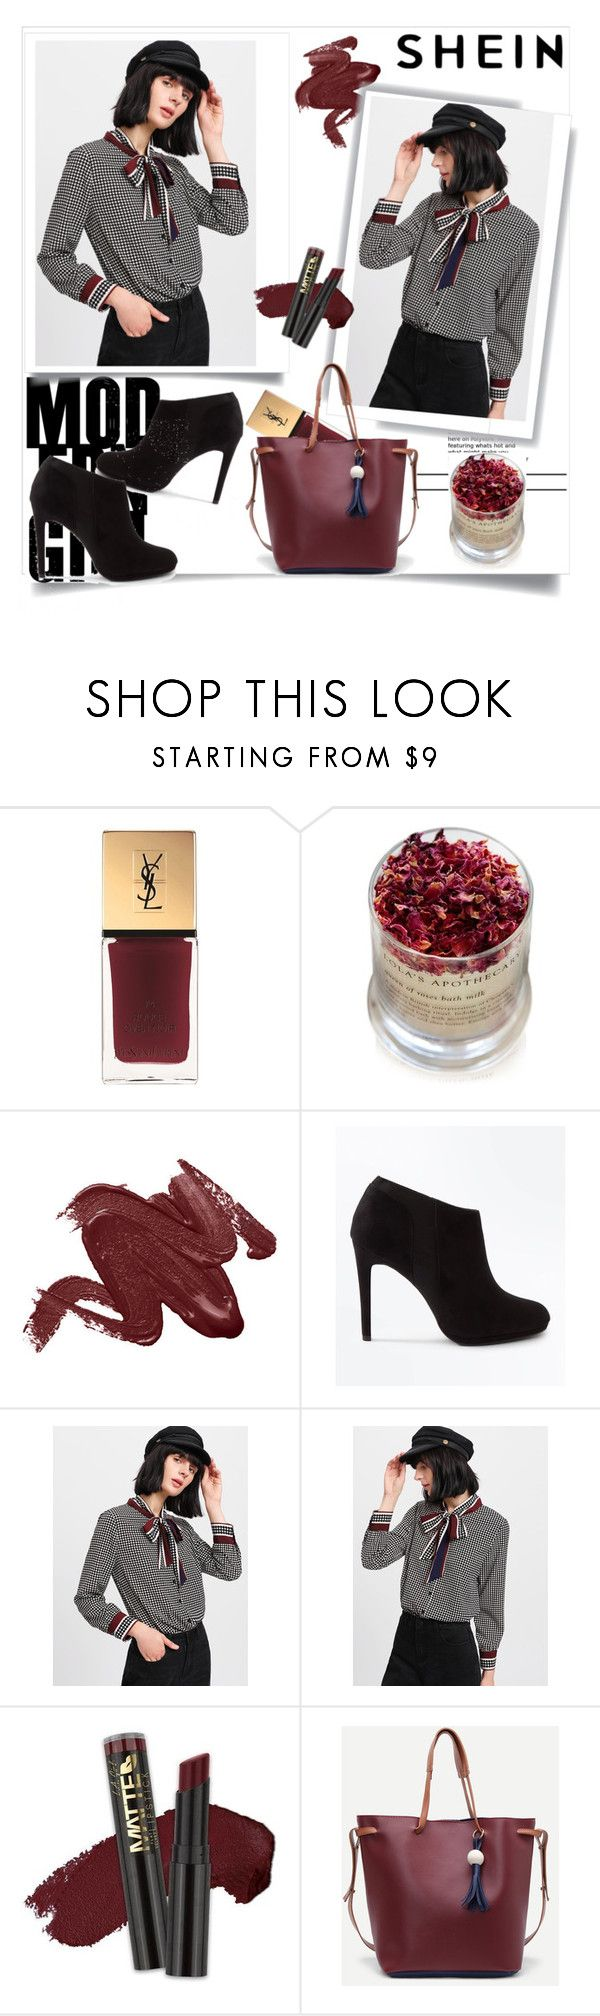 """""""BLOUSE-SHEIN-Contest!"""" by s-fashionb ❤ liked on Polyvore featuring Yves Saint Laurent, Lola's Apothecary, New Look and L.A. Girl"""